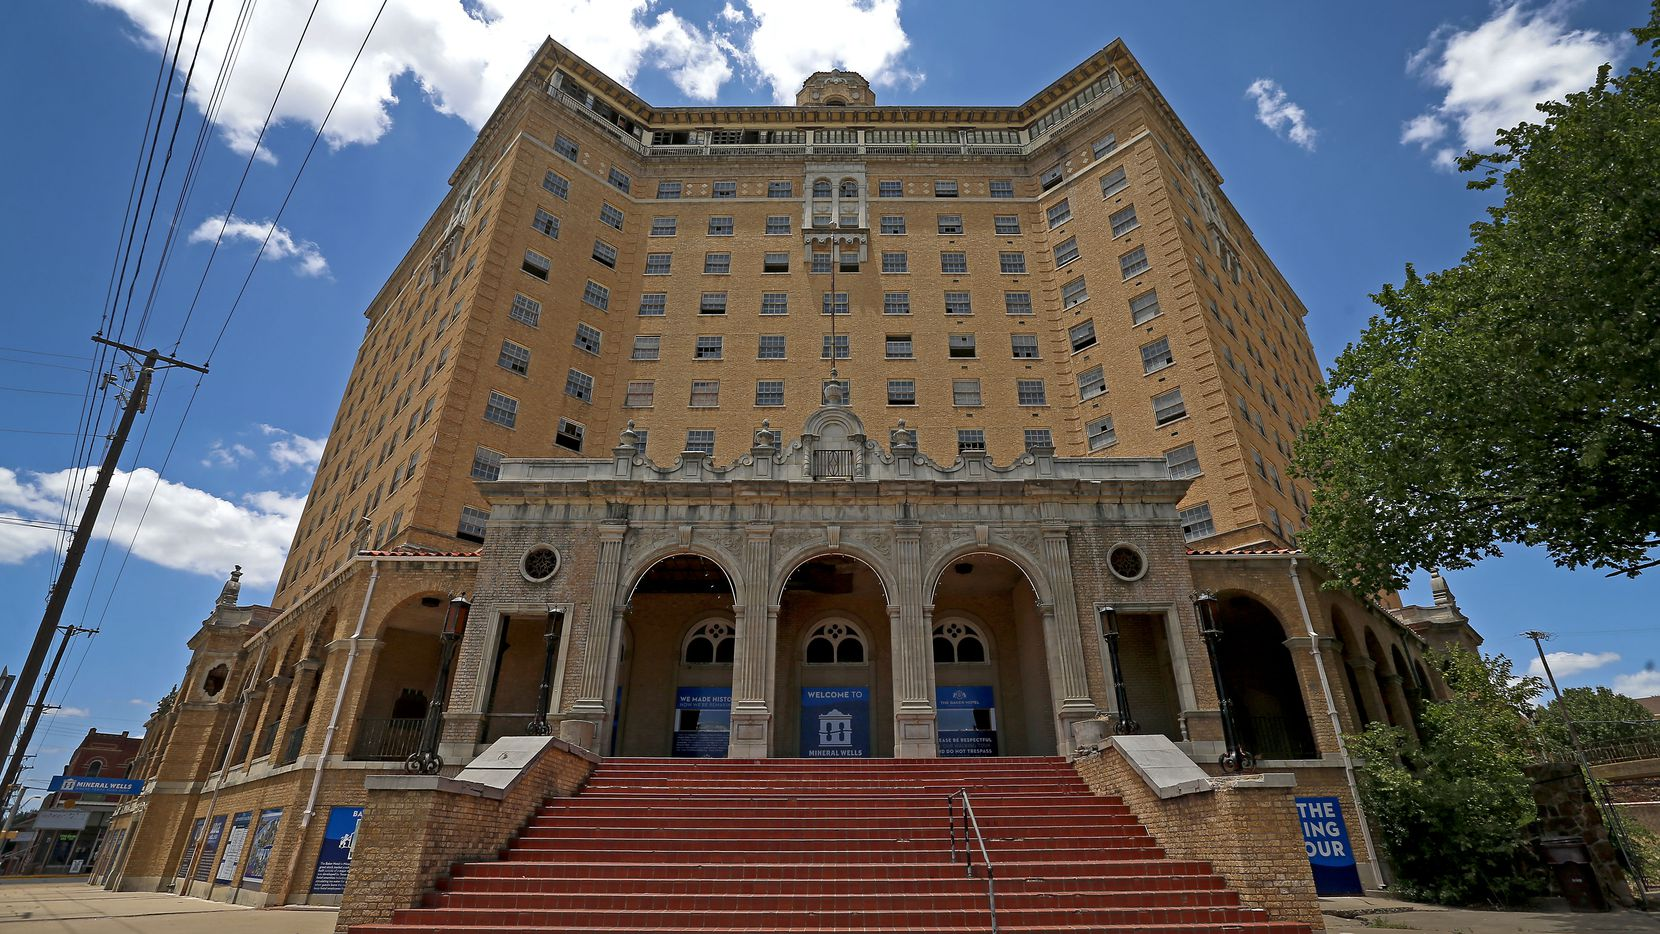 The Baker Hotel opened in 1929 and has been closed since the 1970s.